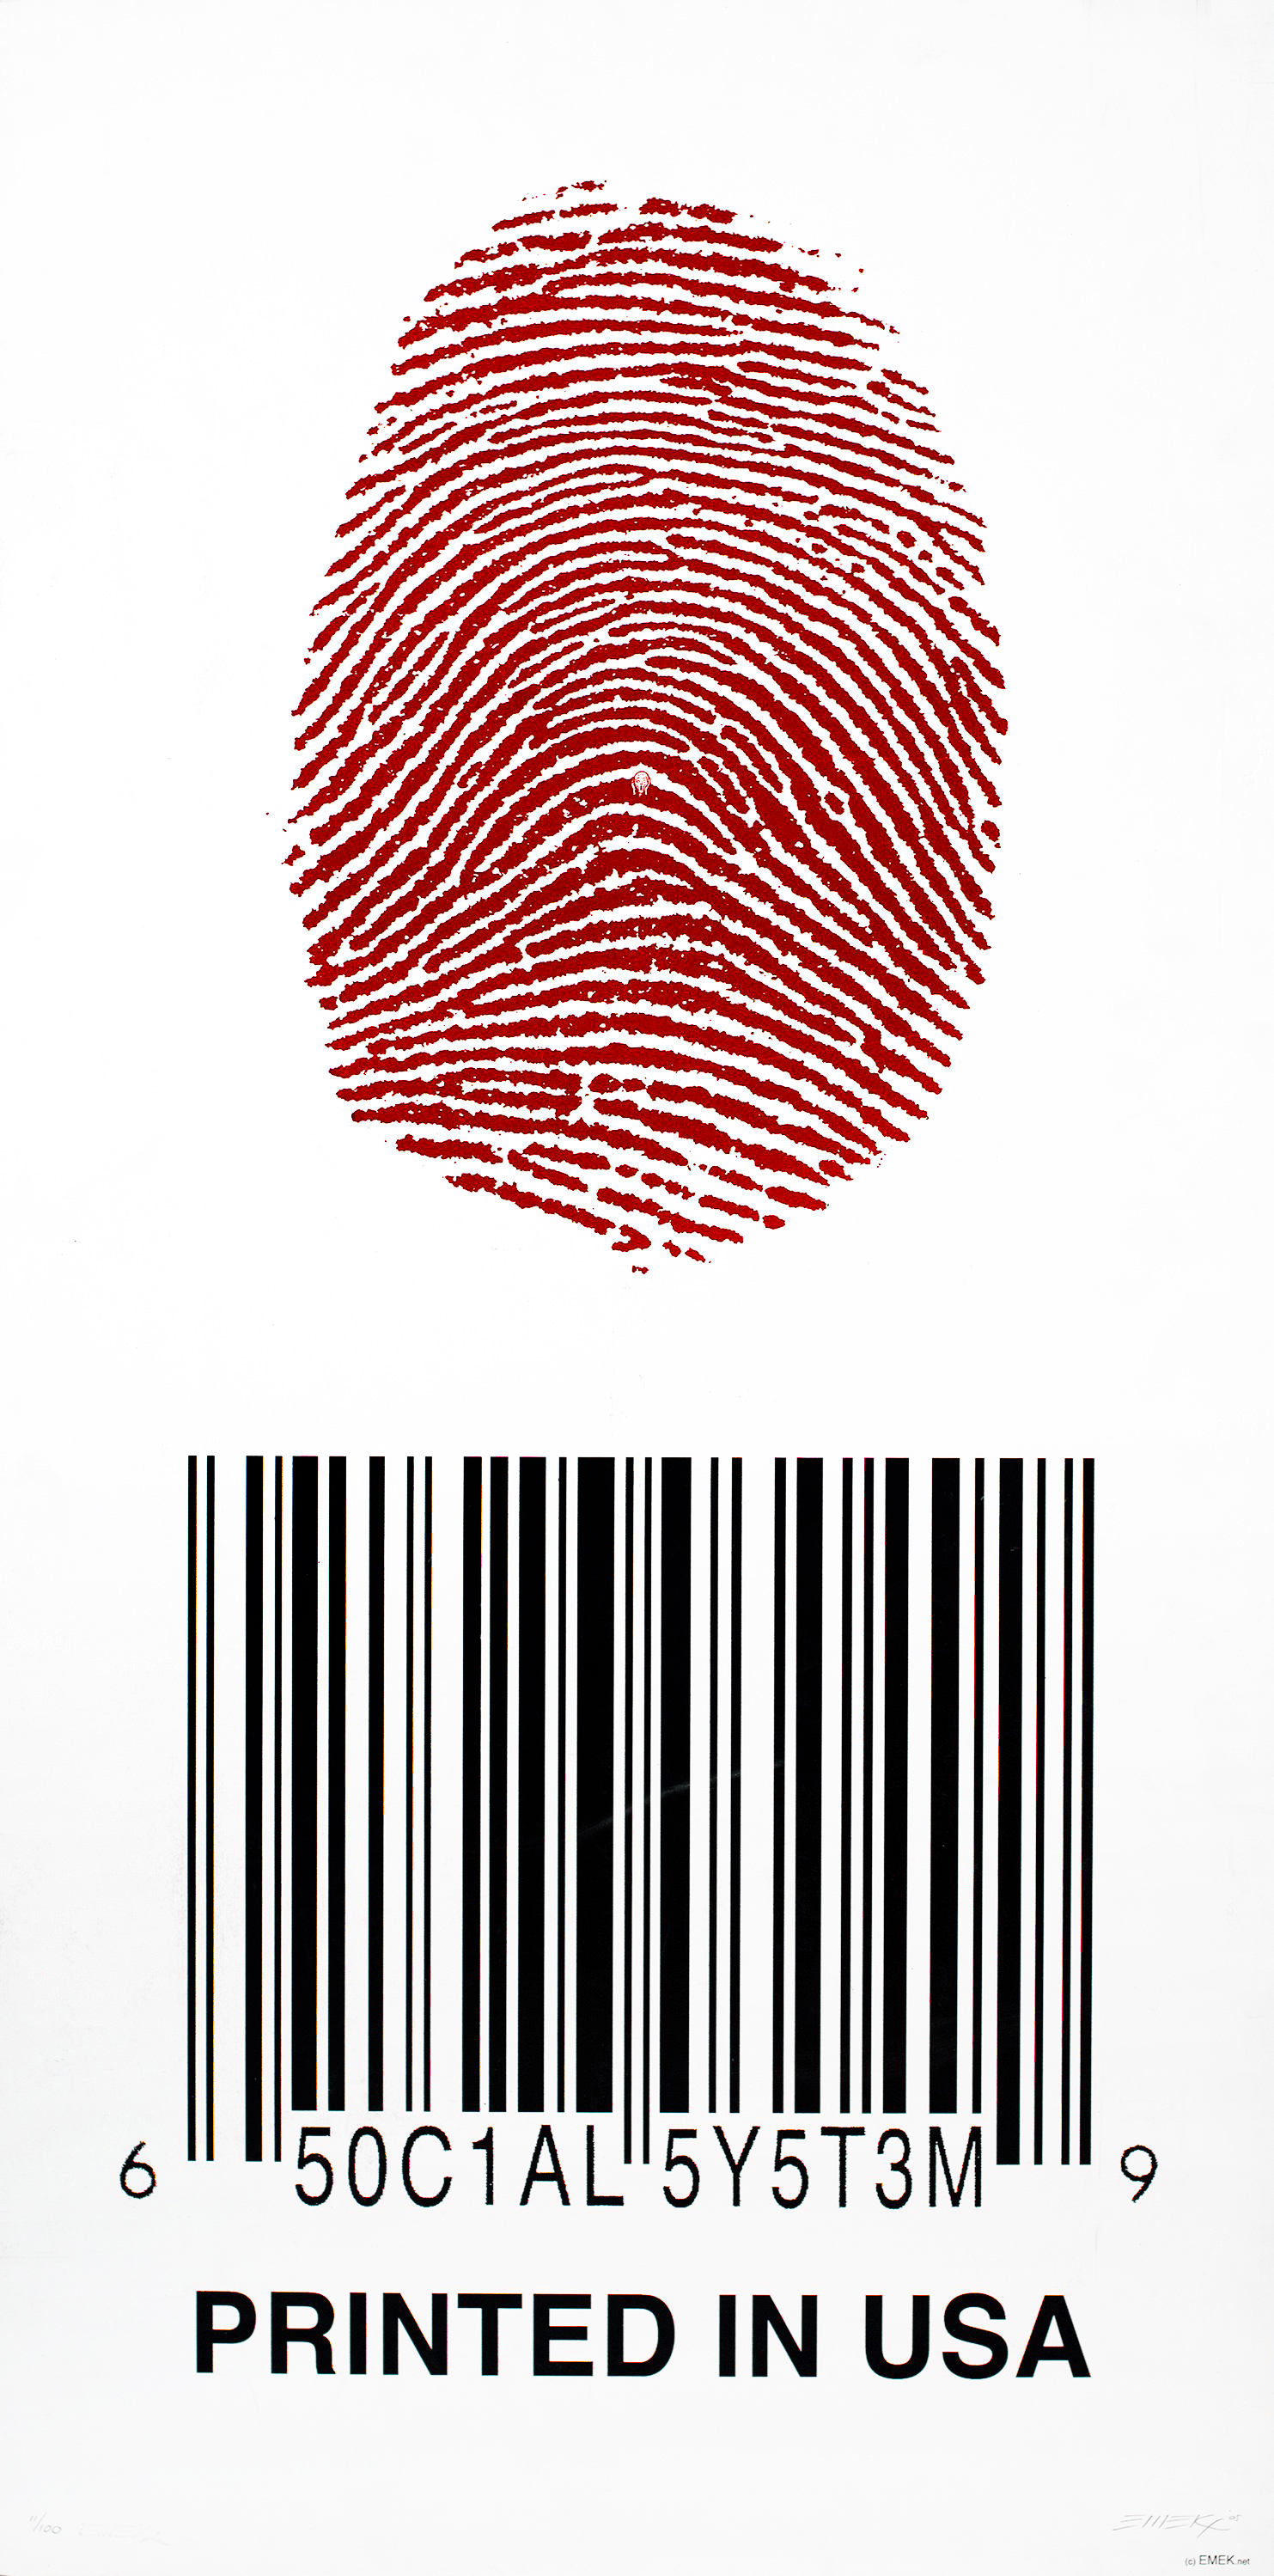 "A large red fingerprint and a black barcode are arranged vertically against a white background. In the middle of the fingerprint is a very small copy of the face from Edvard Munch's ""The Scream."""